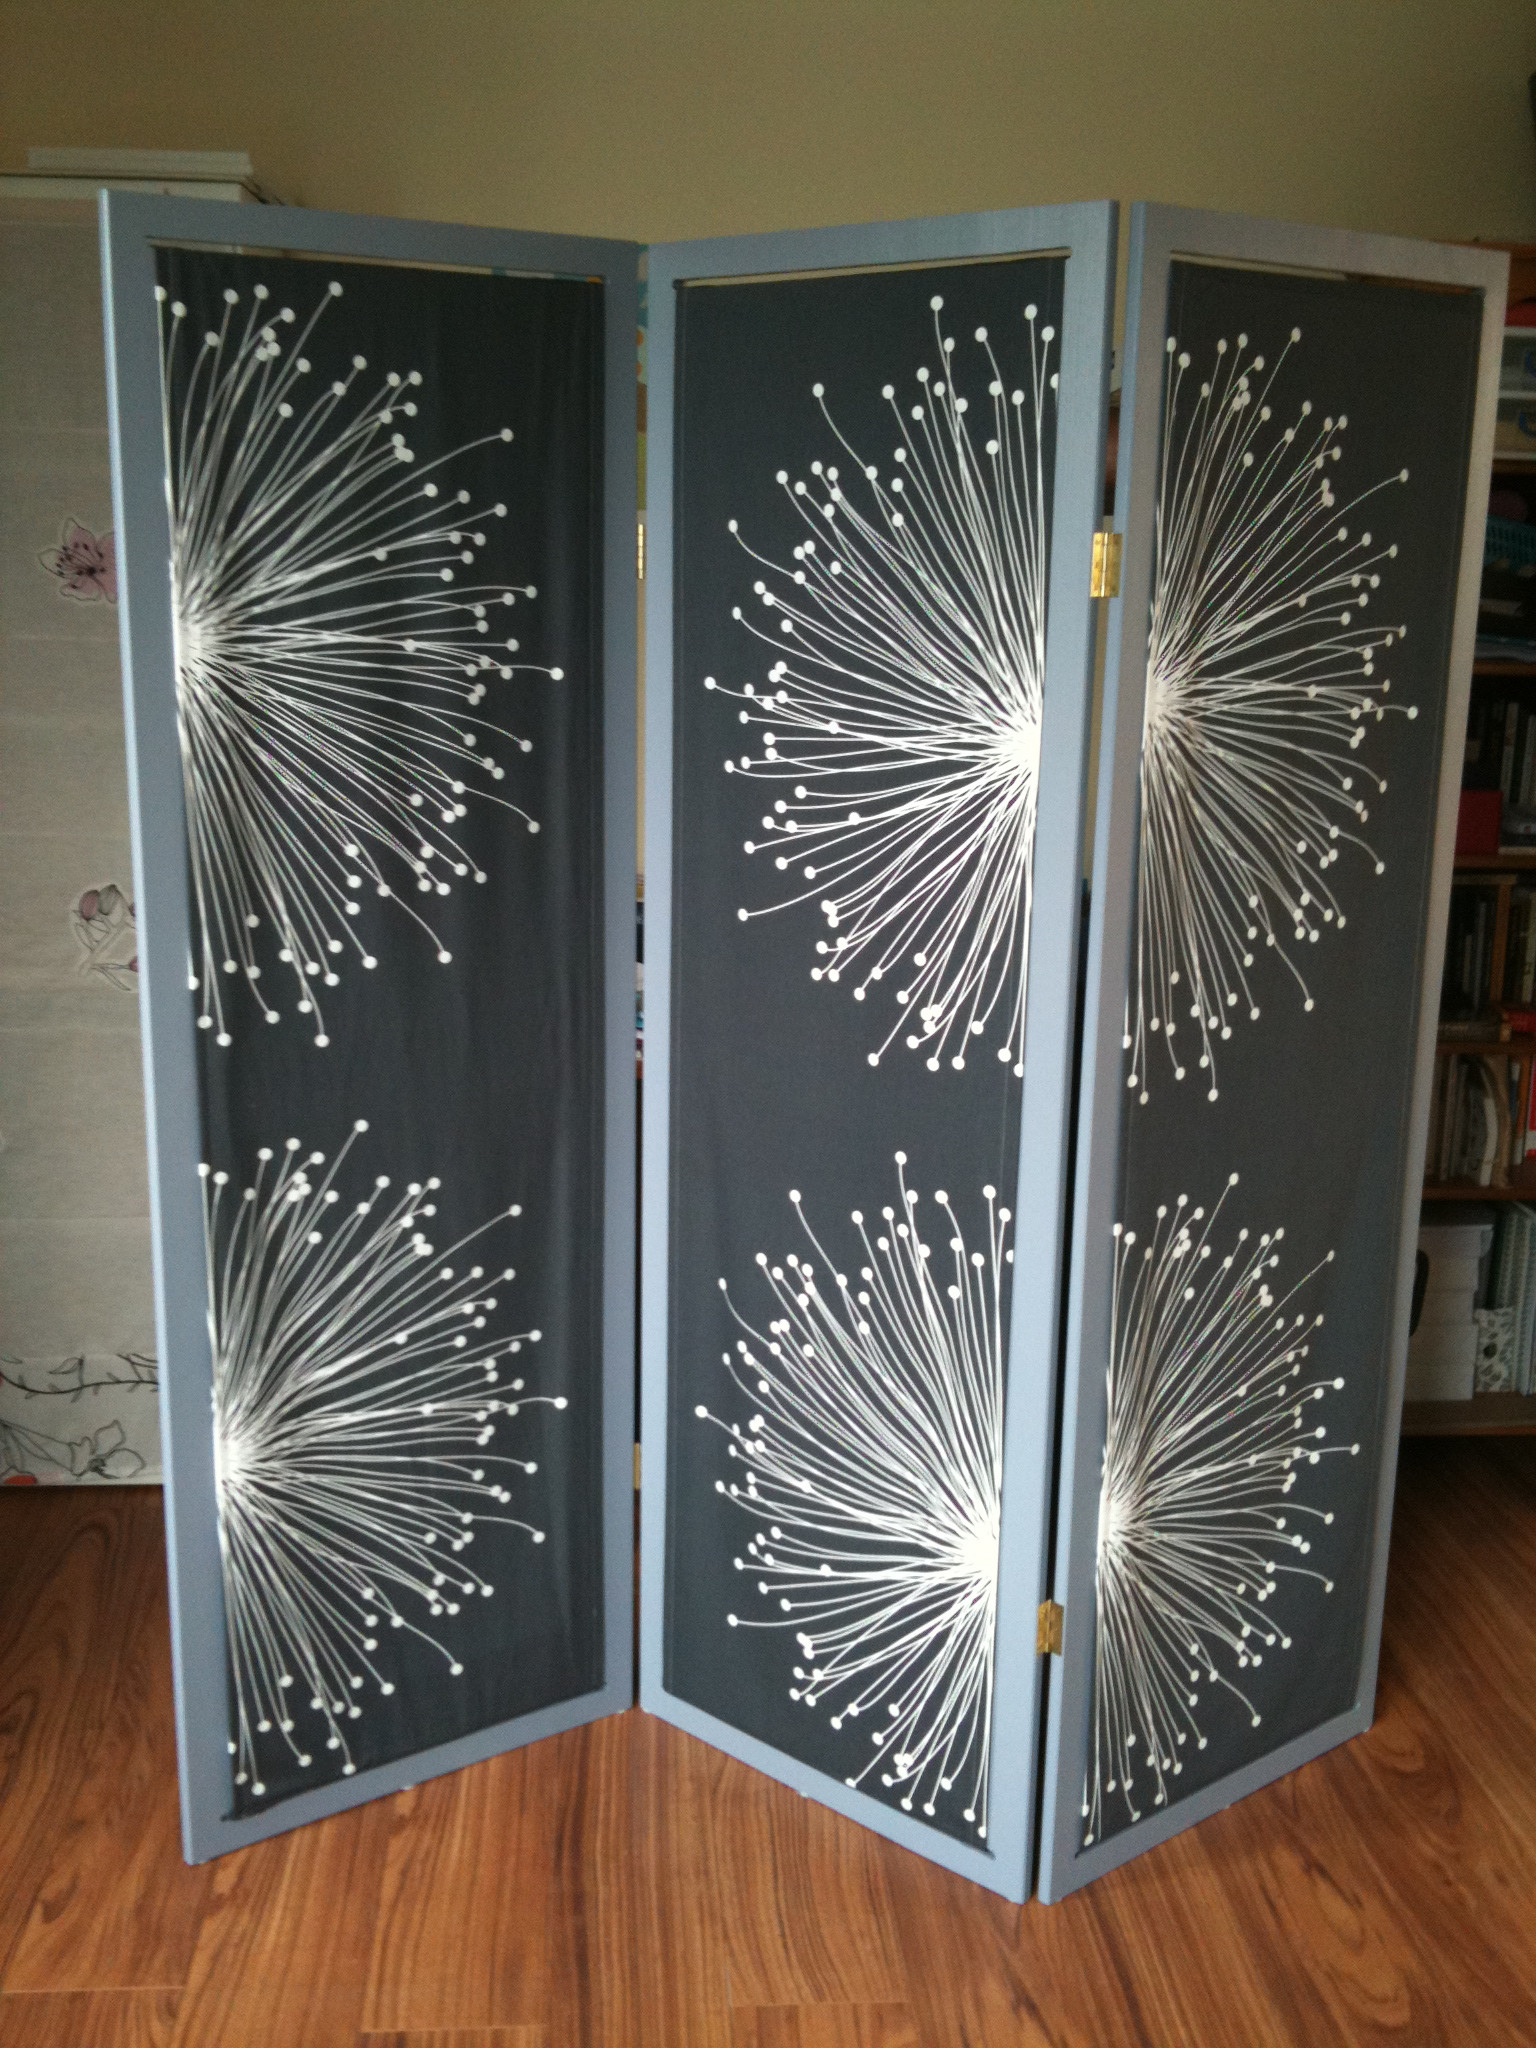 Paravent Diy  Do it yourself Room Divider